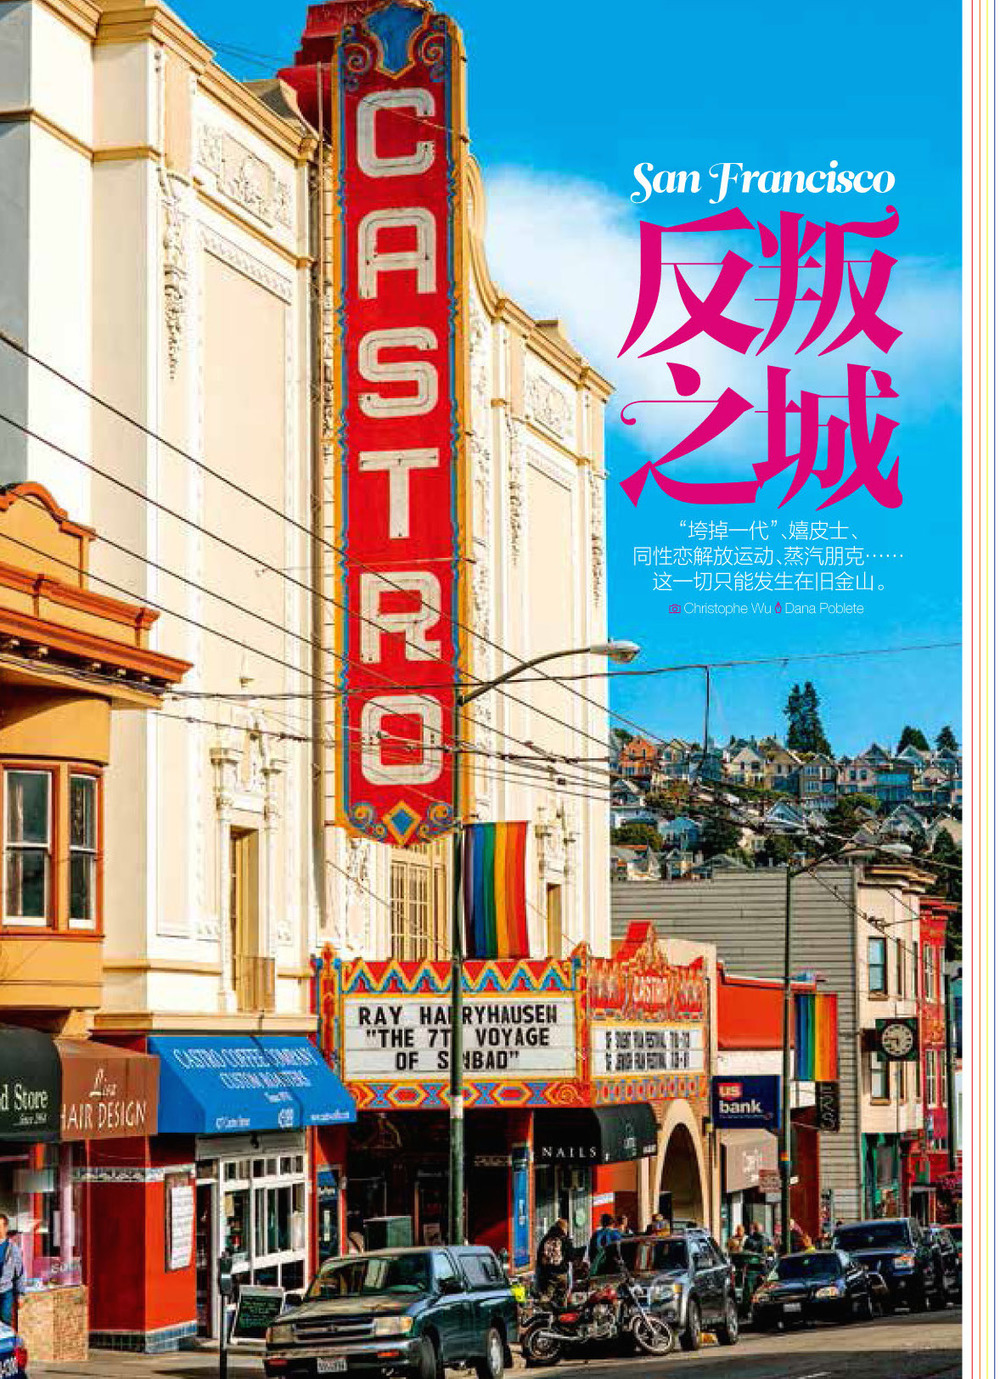 The Subterraneans       Conde Nast Traveler China   This is a fun story I wrote about the historic subcultures of San Francisco, and how they still have an influence on the colorful city today.  I collaborated with the photographer Christophe Wu to capture the spirit of the city's new bohemians.